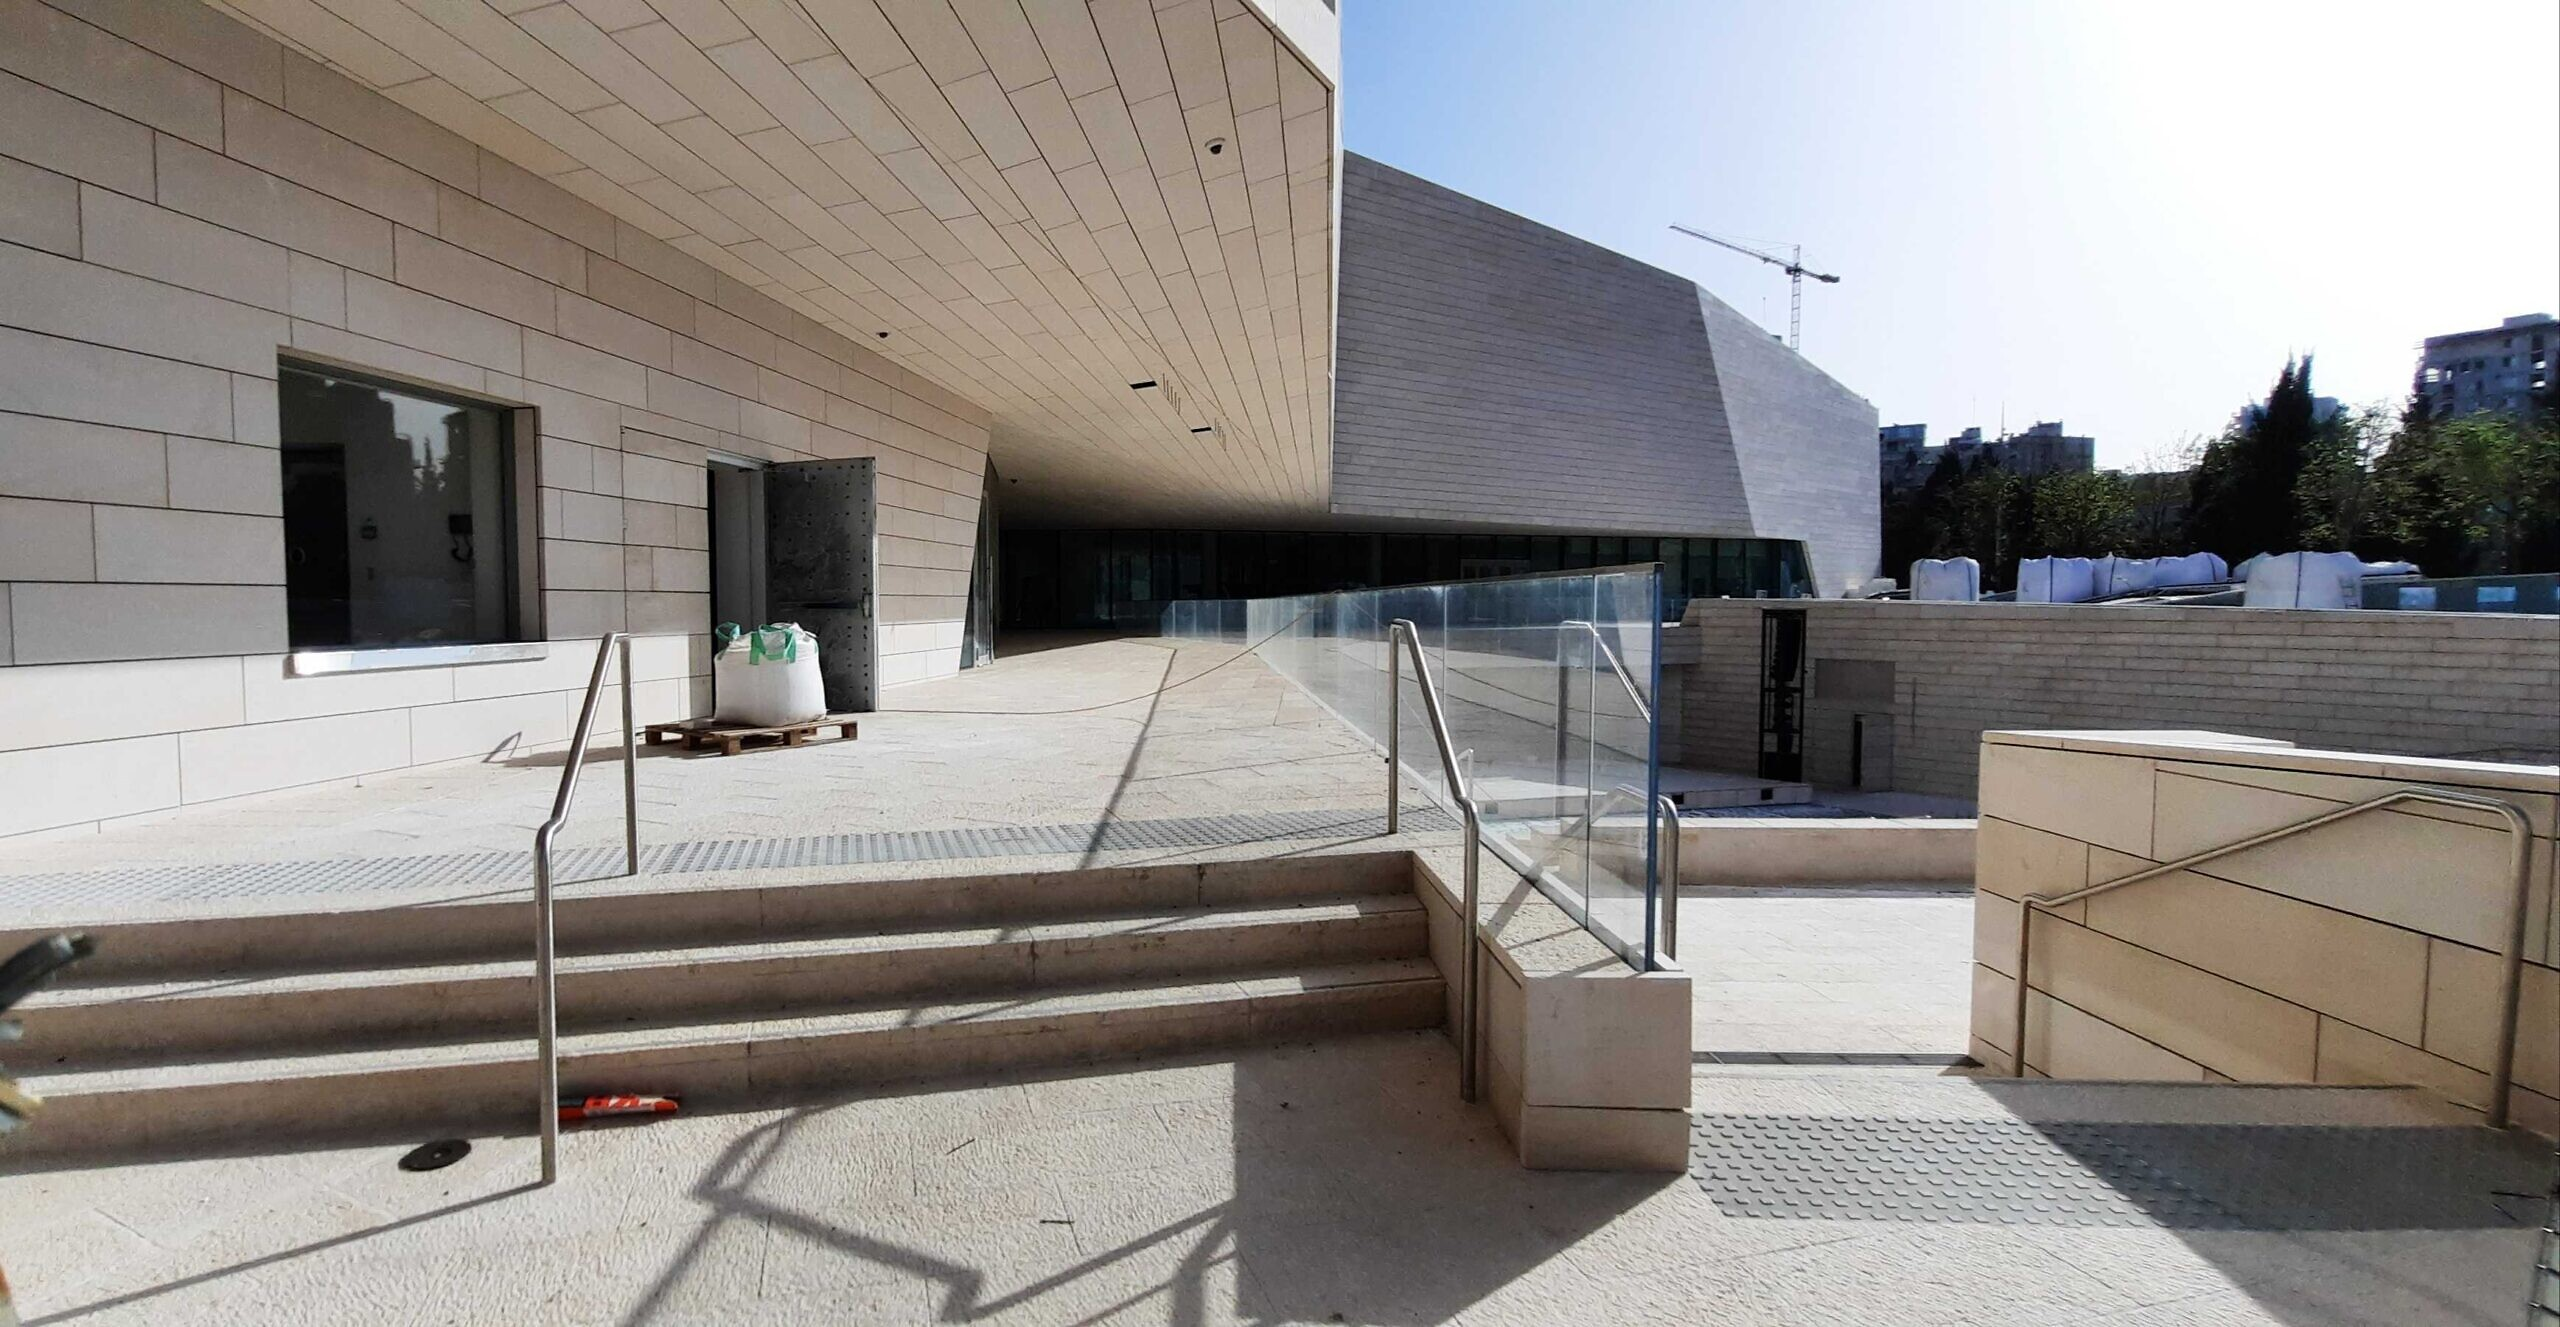 A view of the under-construction Museum of Tolerance Jerusalem on April 5, 2021. (Joshua Davidovich/Times of Israel)